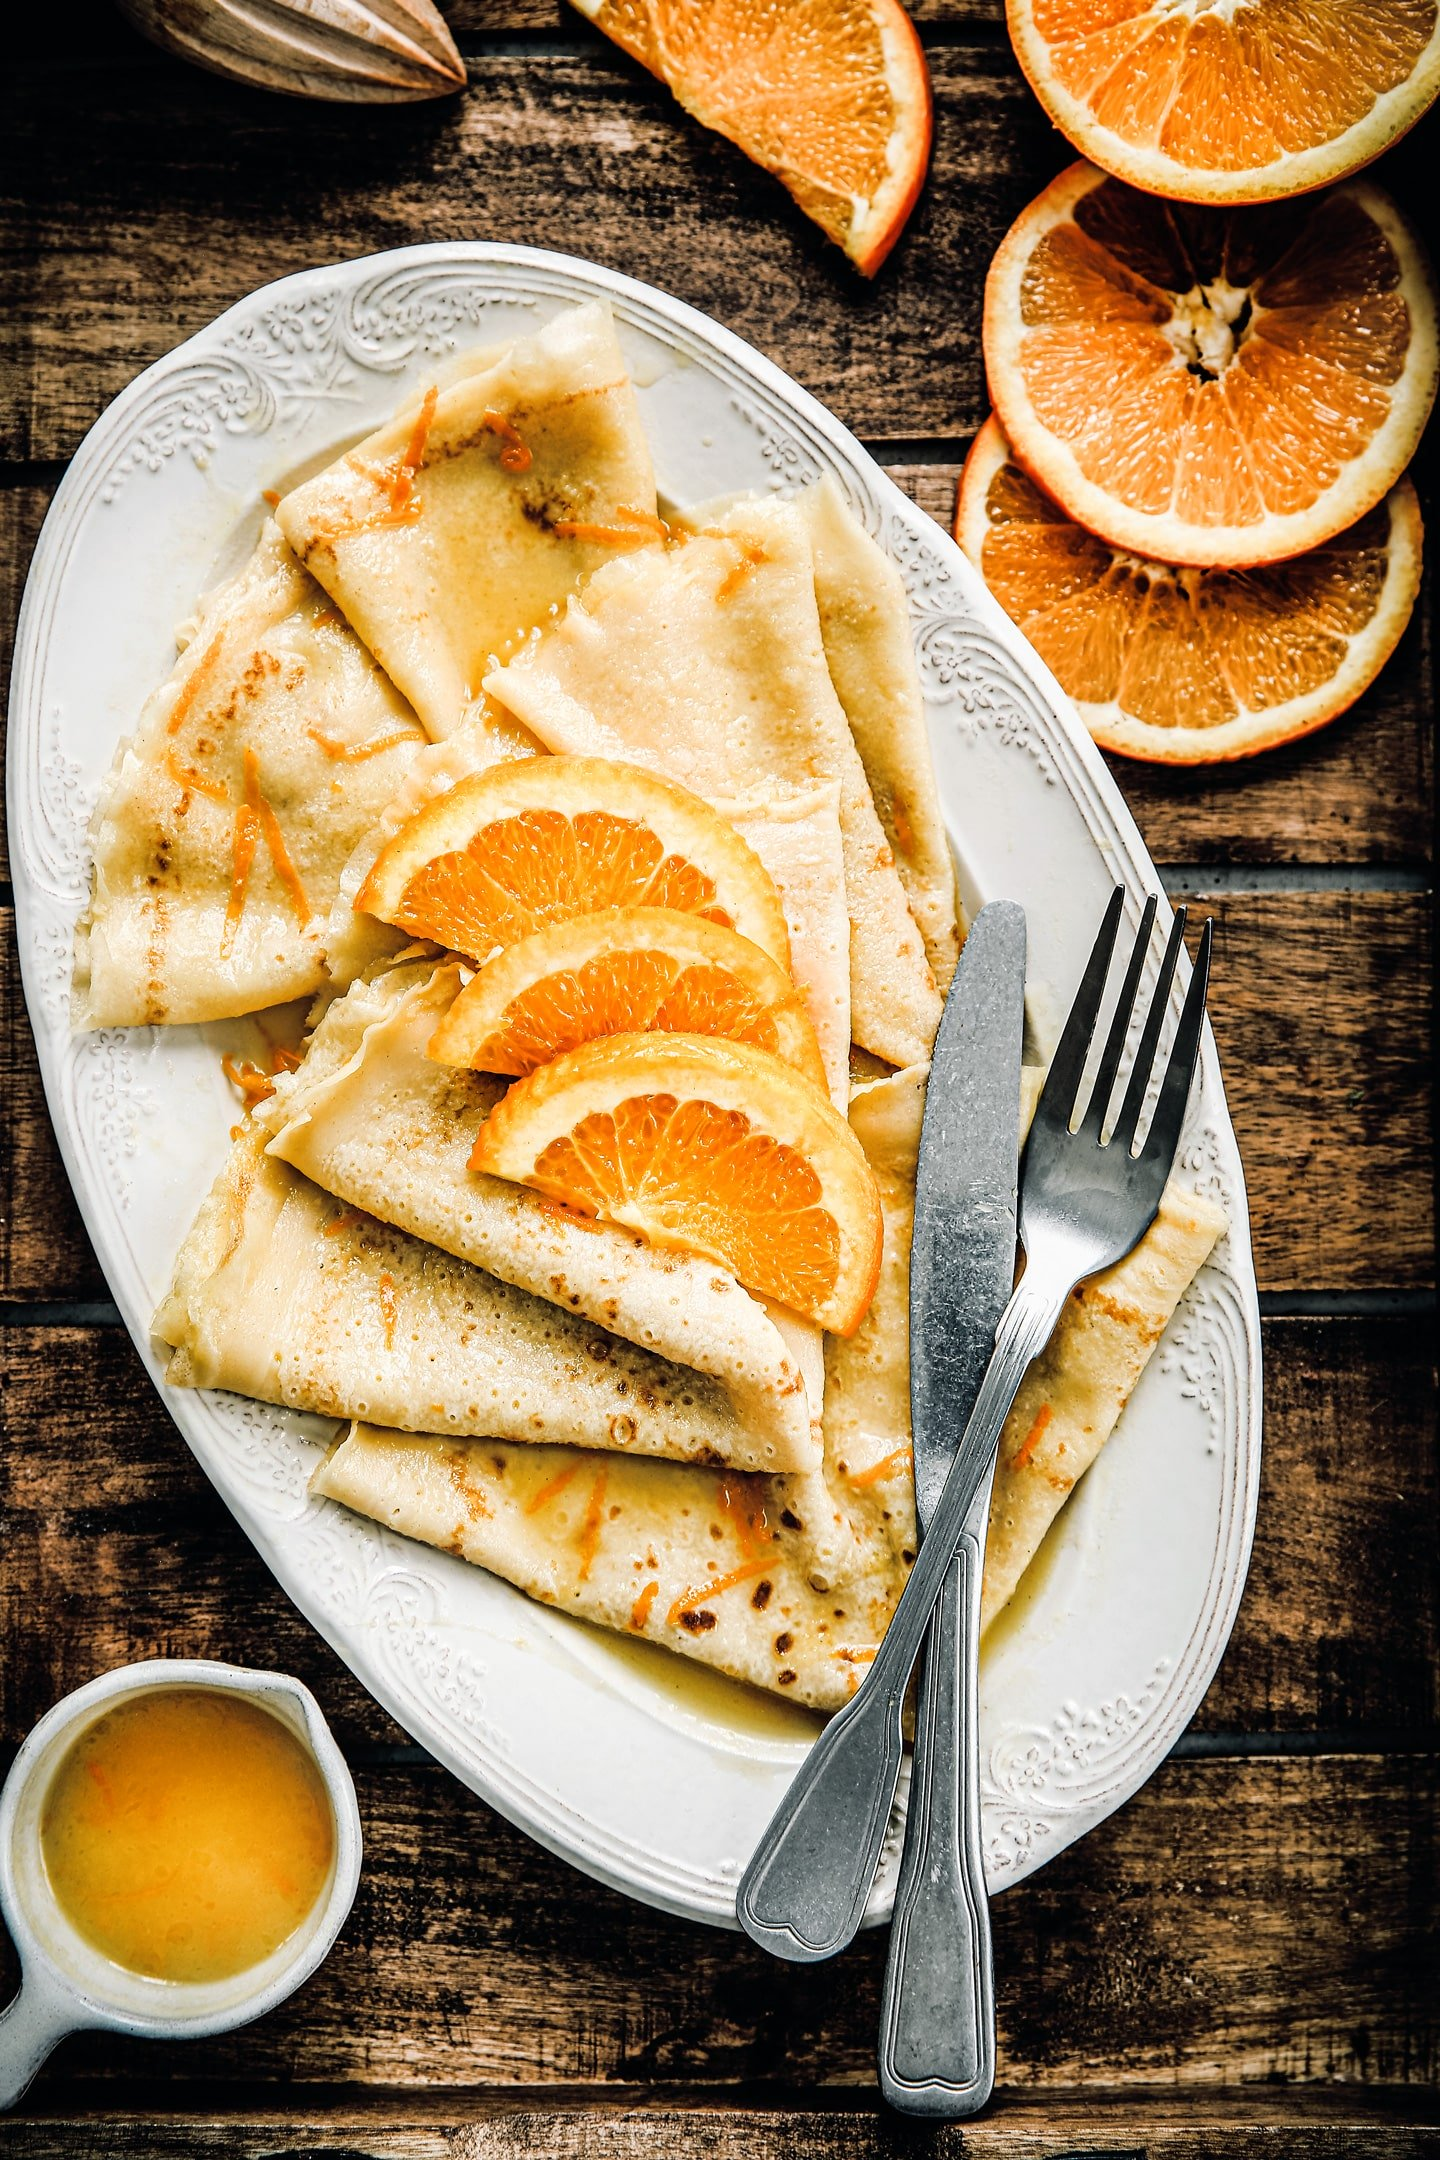 Recipe For Crepes Suzette Easy With Alcohol Free Orange Butter Sauce